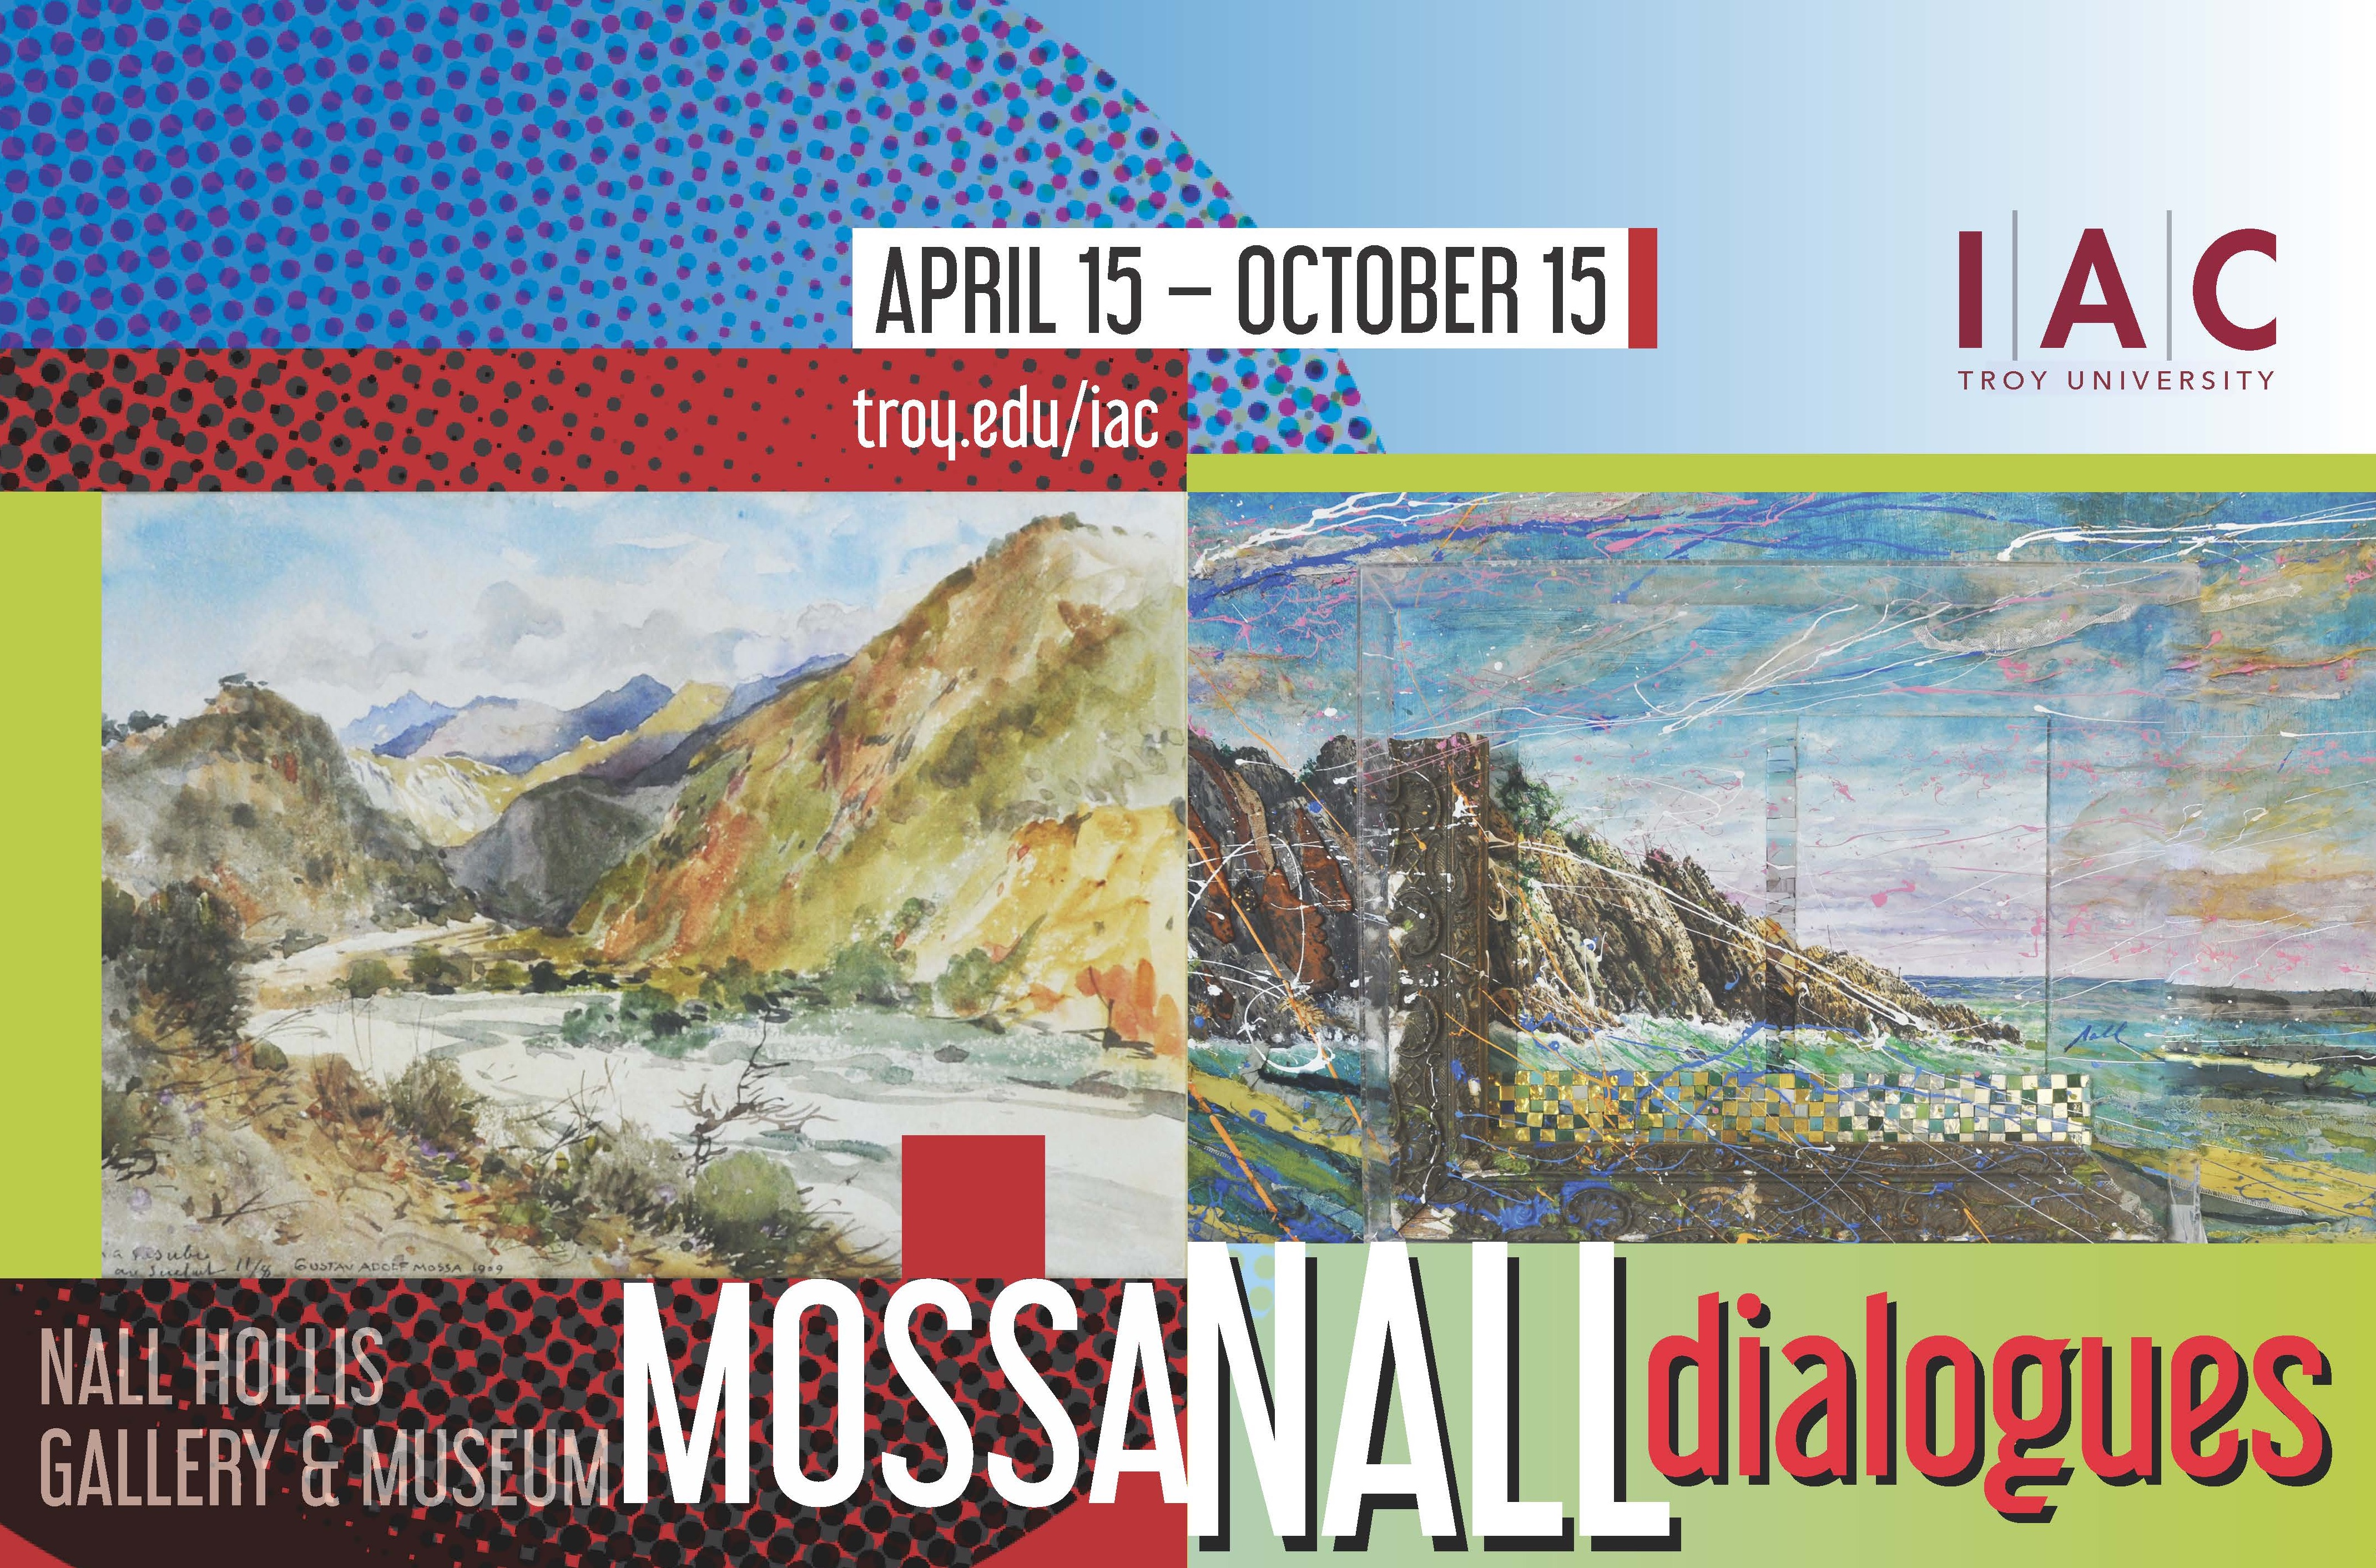 Mossa - Nall Dialogues Exhibit April 15 - October 15 at the Nall Hollis Gallery and Museum in the International Arts Center